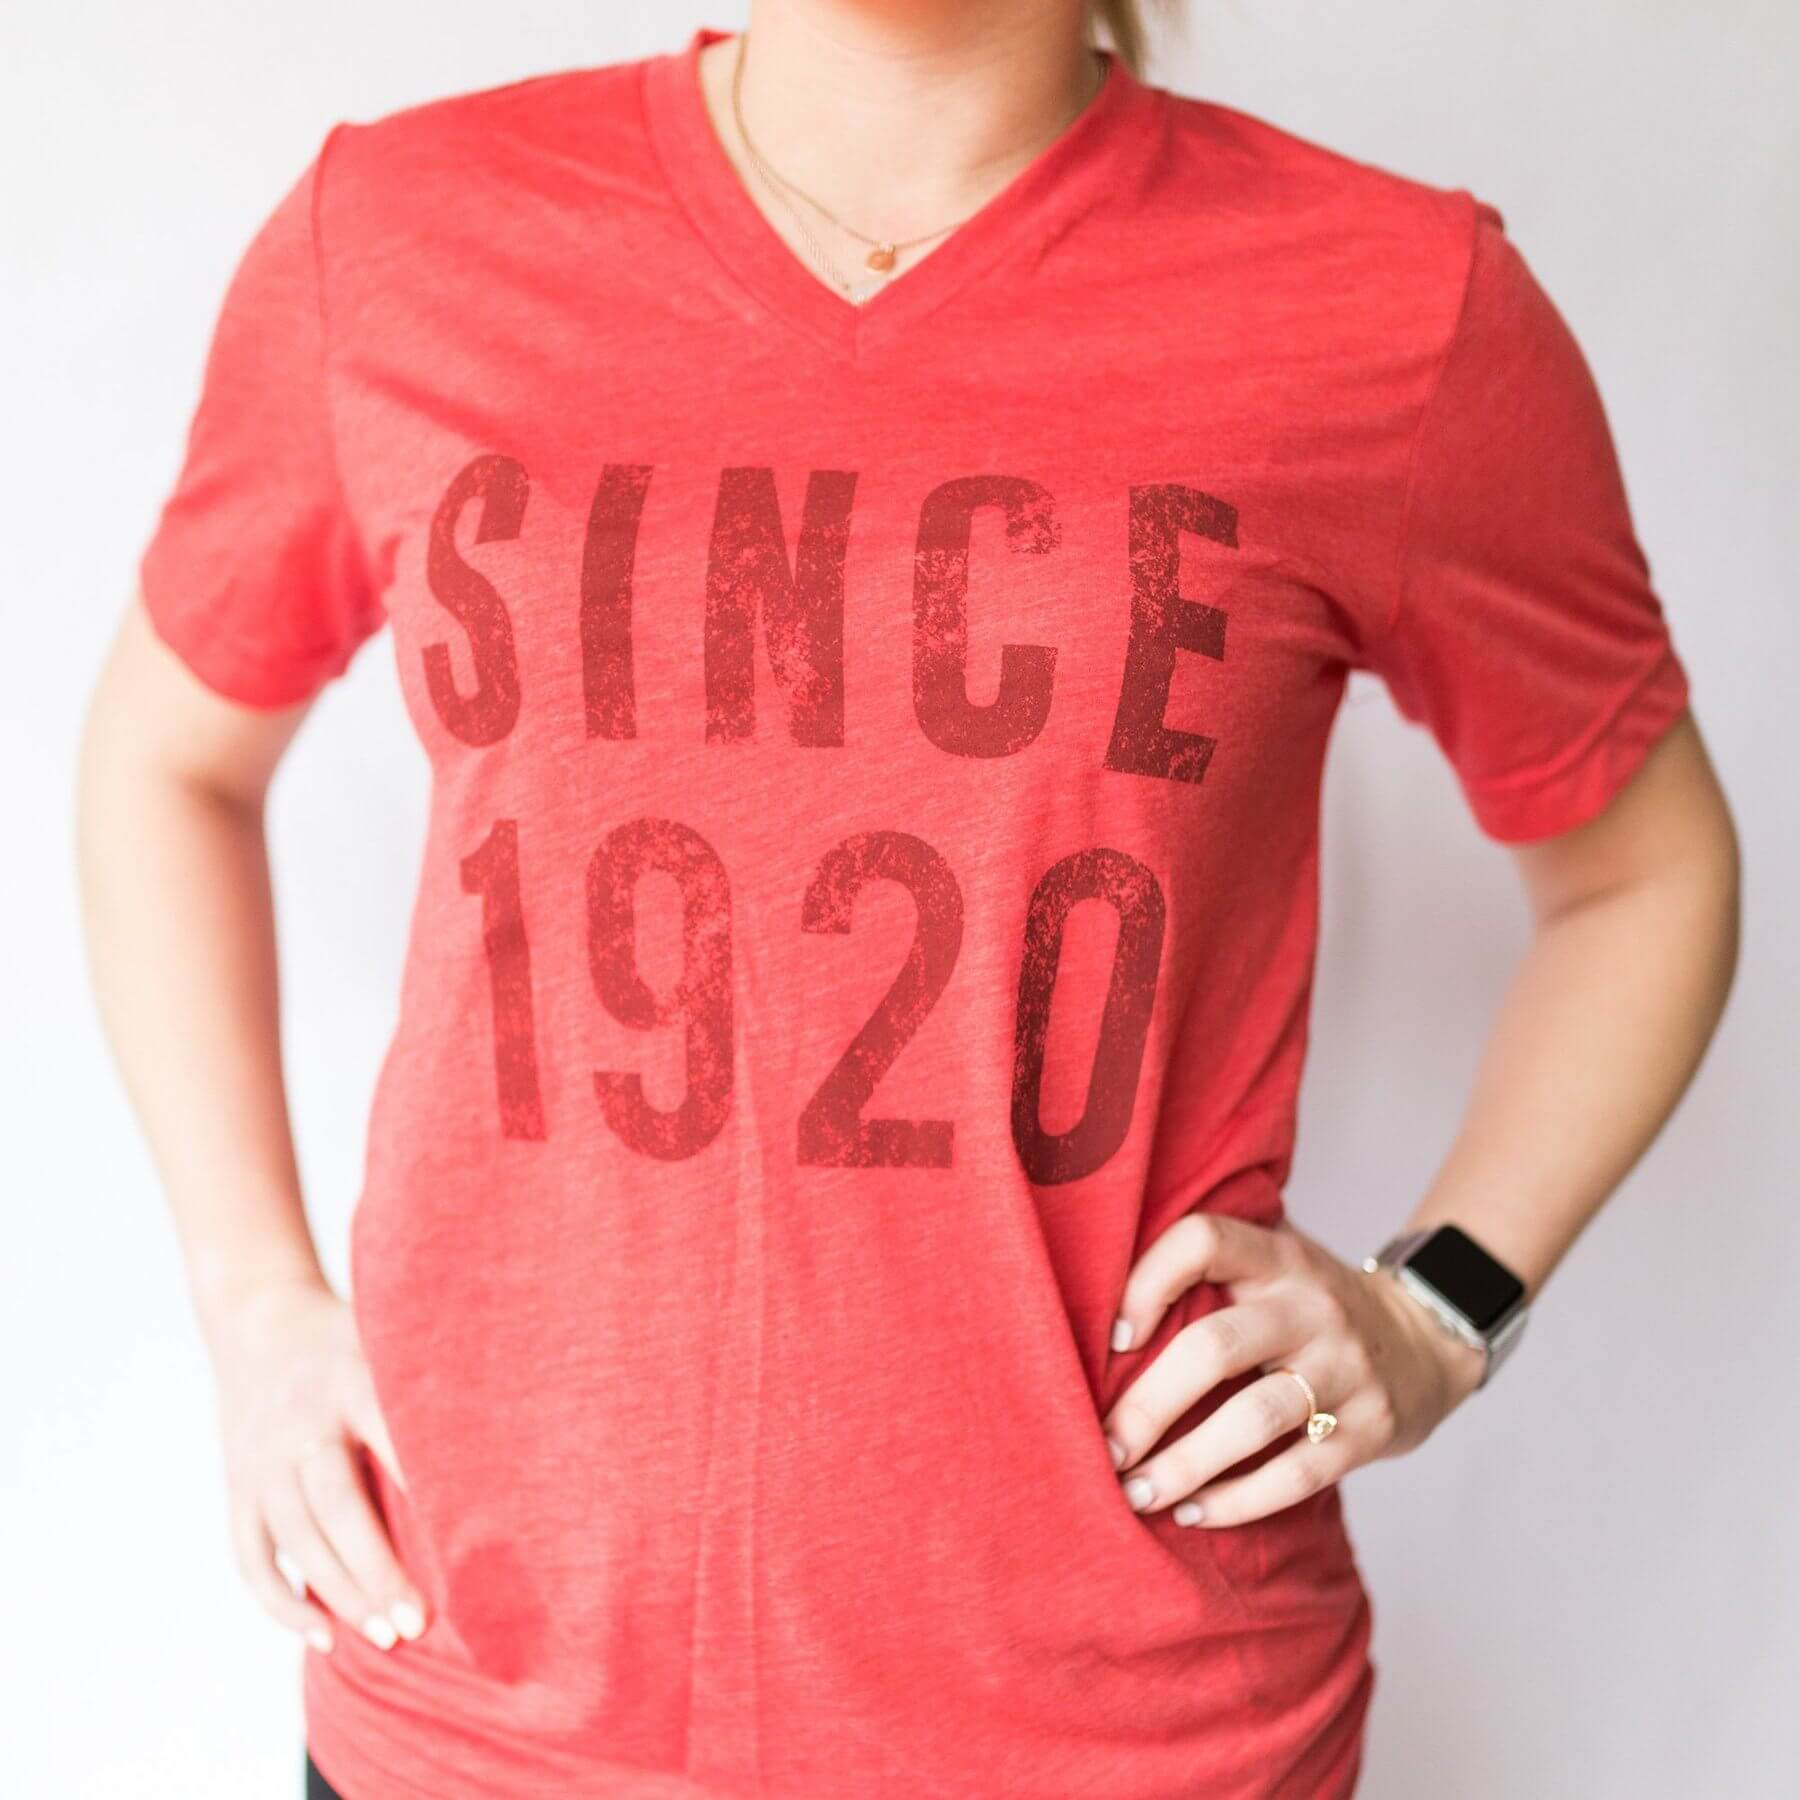 Rep your 1920 tee with pride